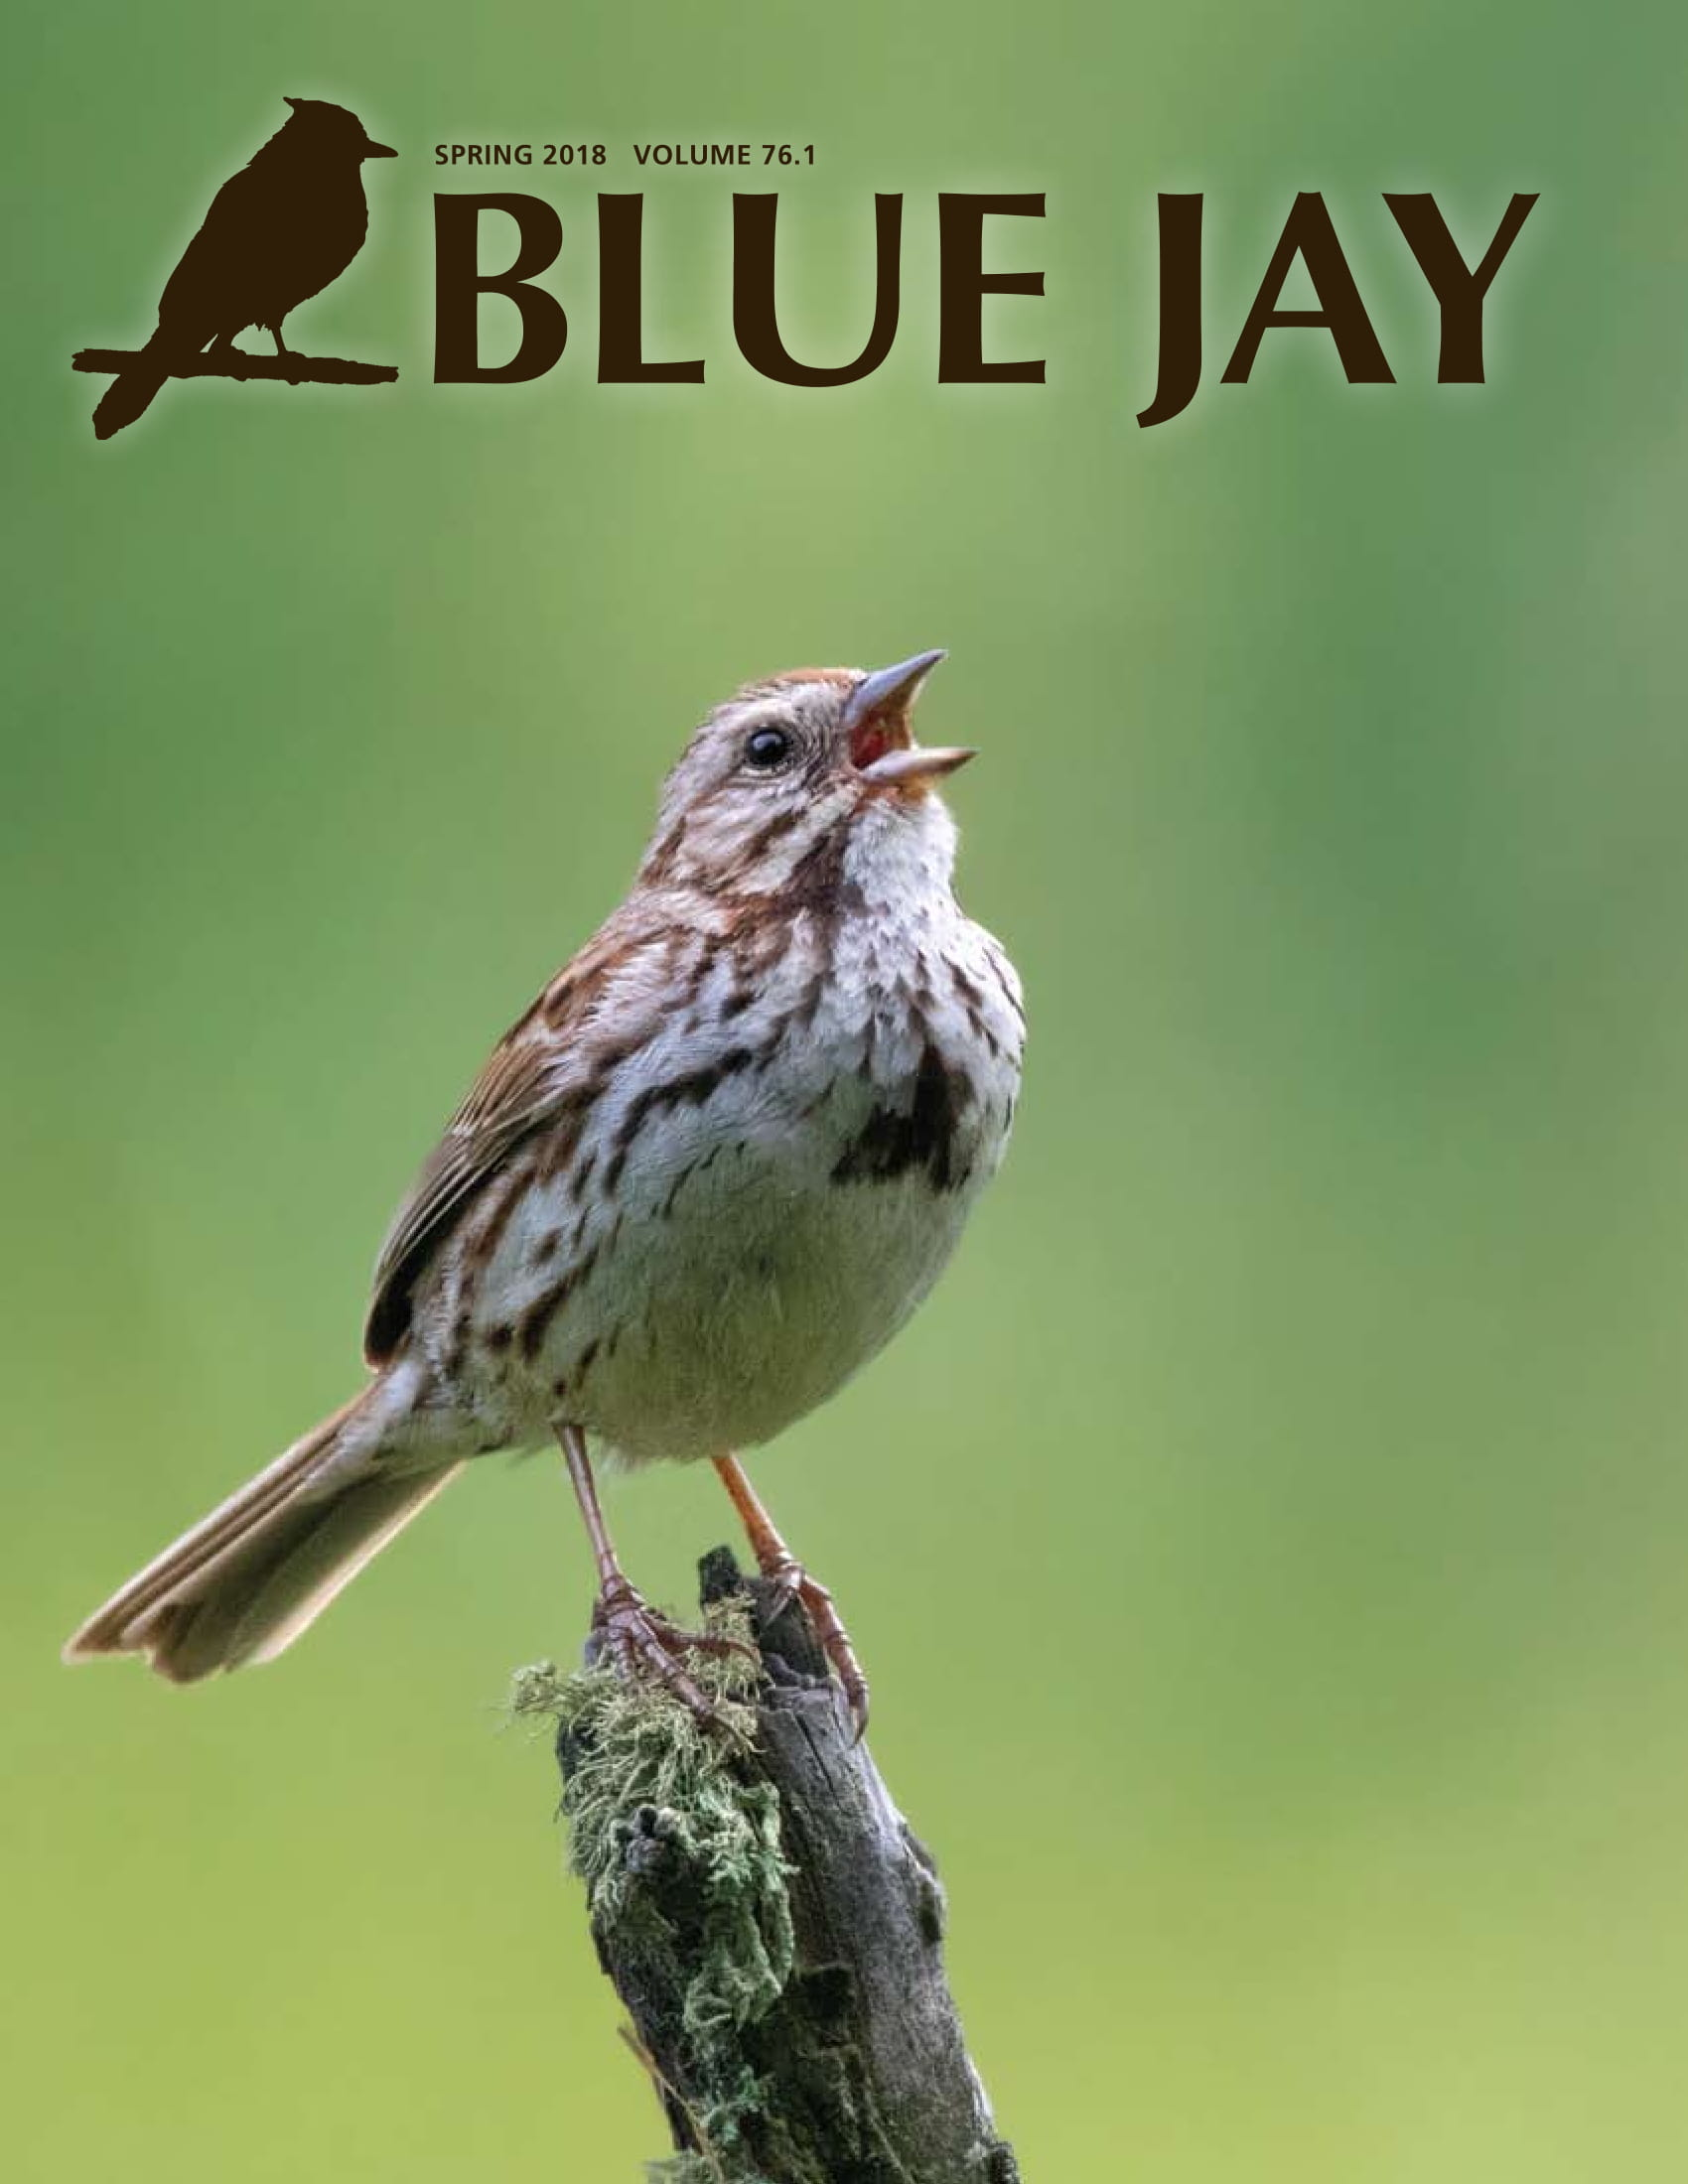 cover image featuring a song sparrow